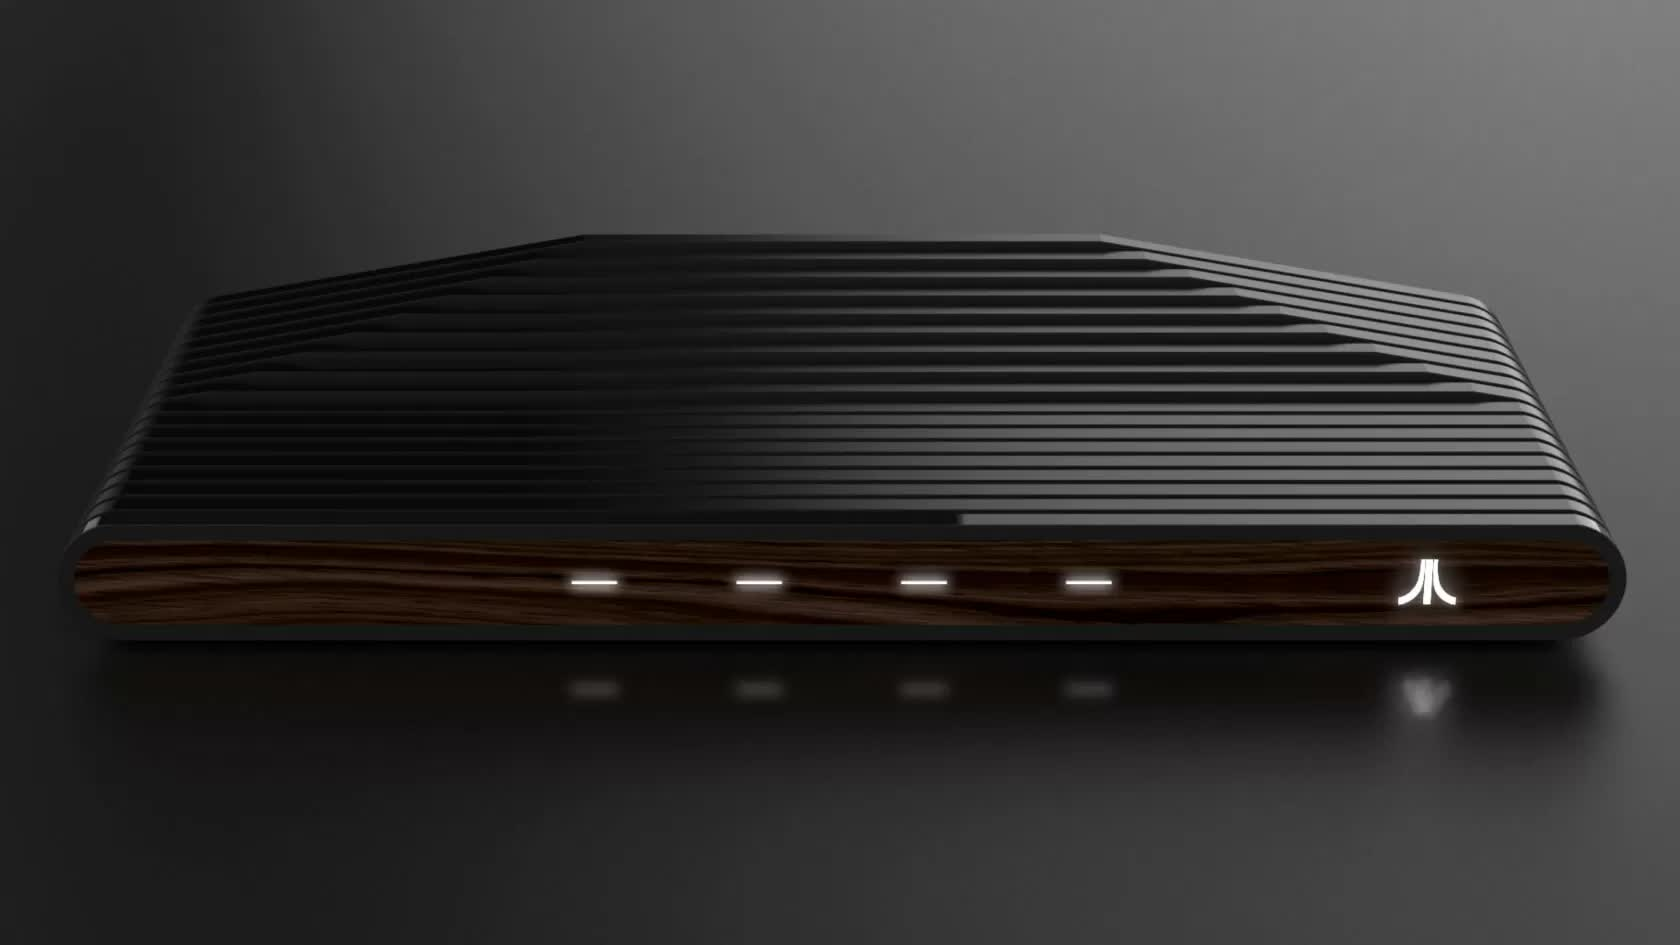 Atari to launch its own cryptocurrency later this month